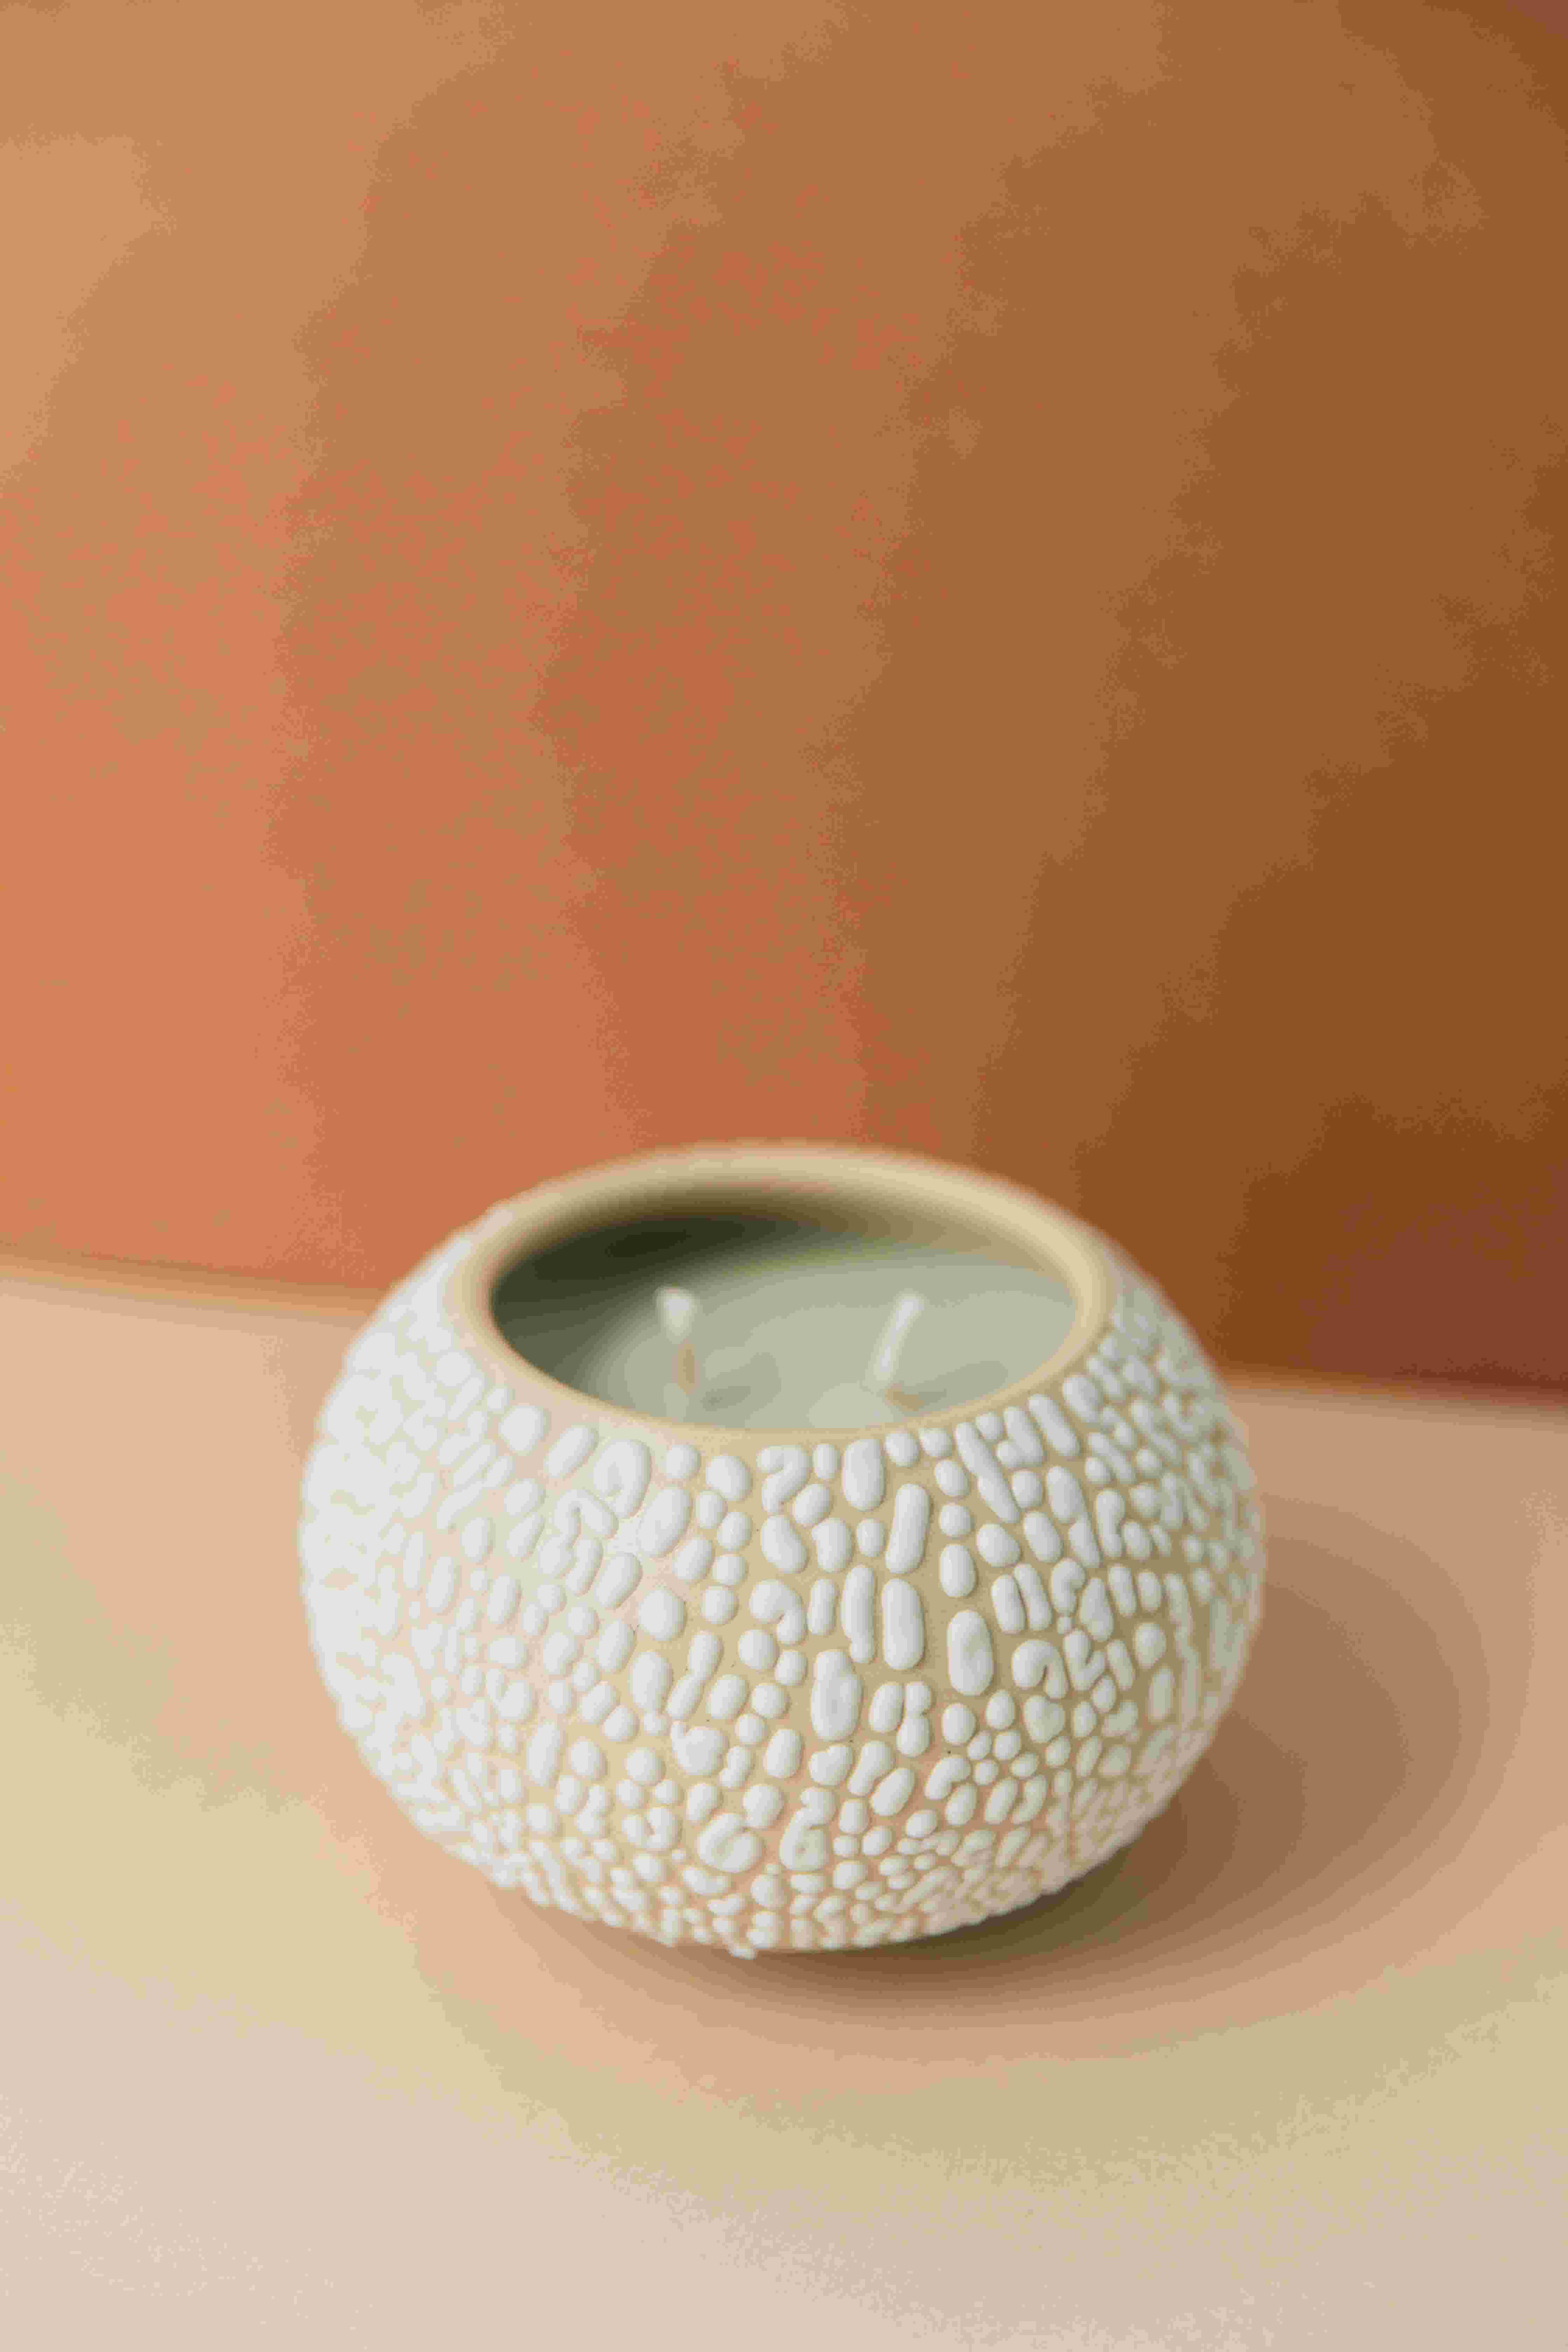 Whitney Port x Favor's Teton candle, in a small globe-shaped container with a unique chunky white glaze